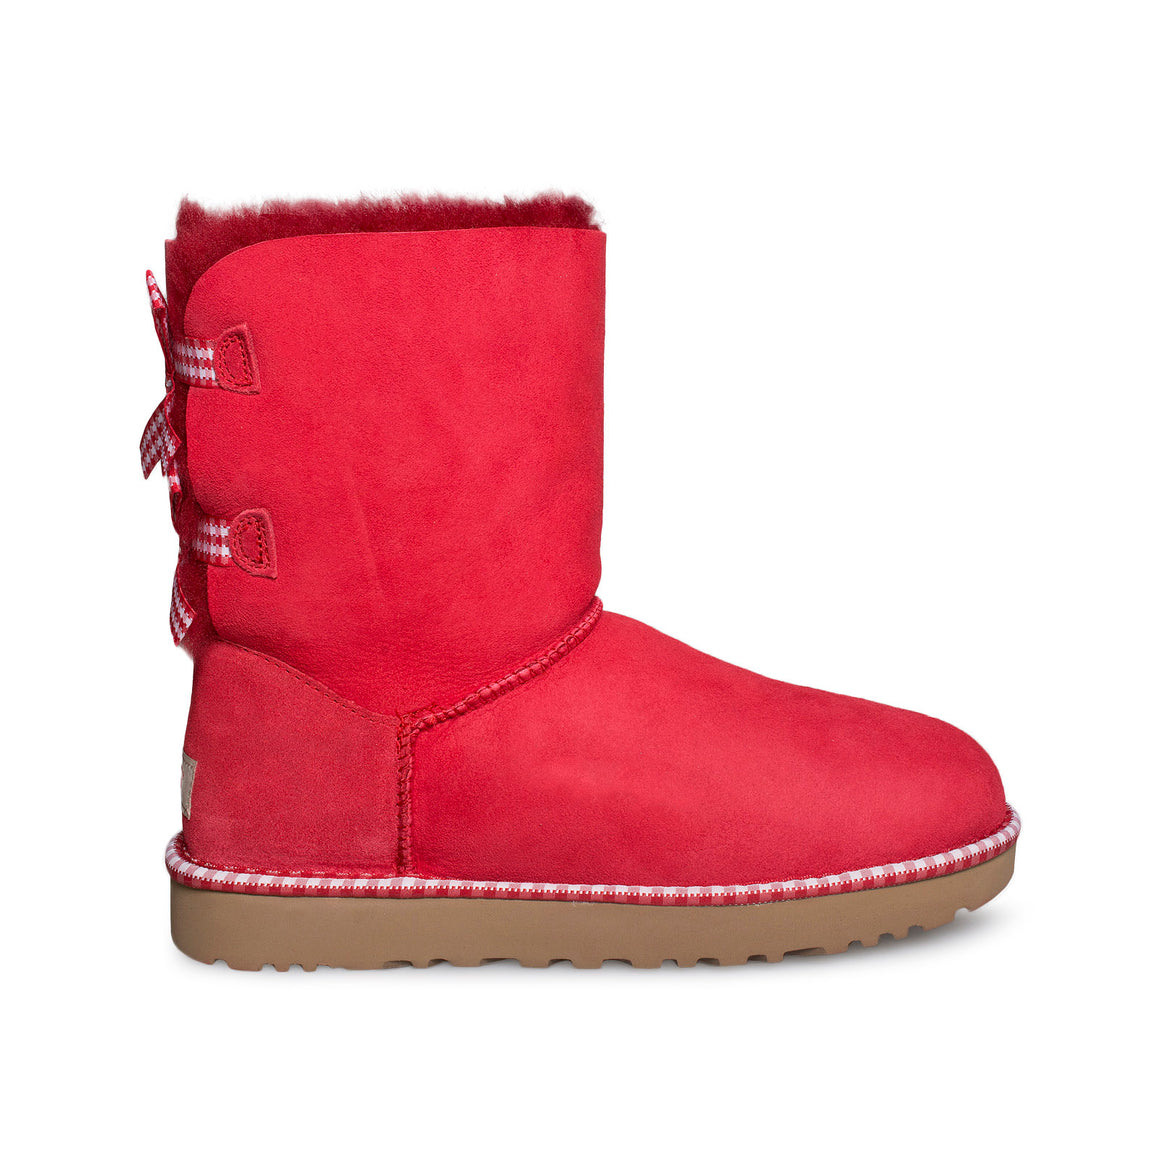 UGG Bailey Bow Gingham Ribbon Red Boots - Women's